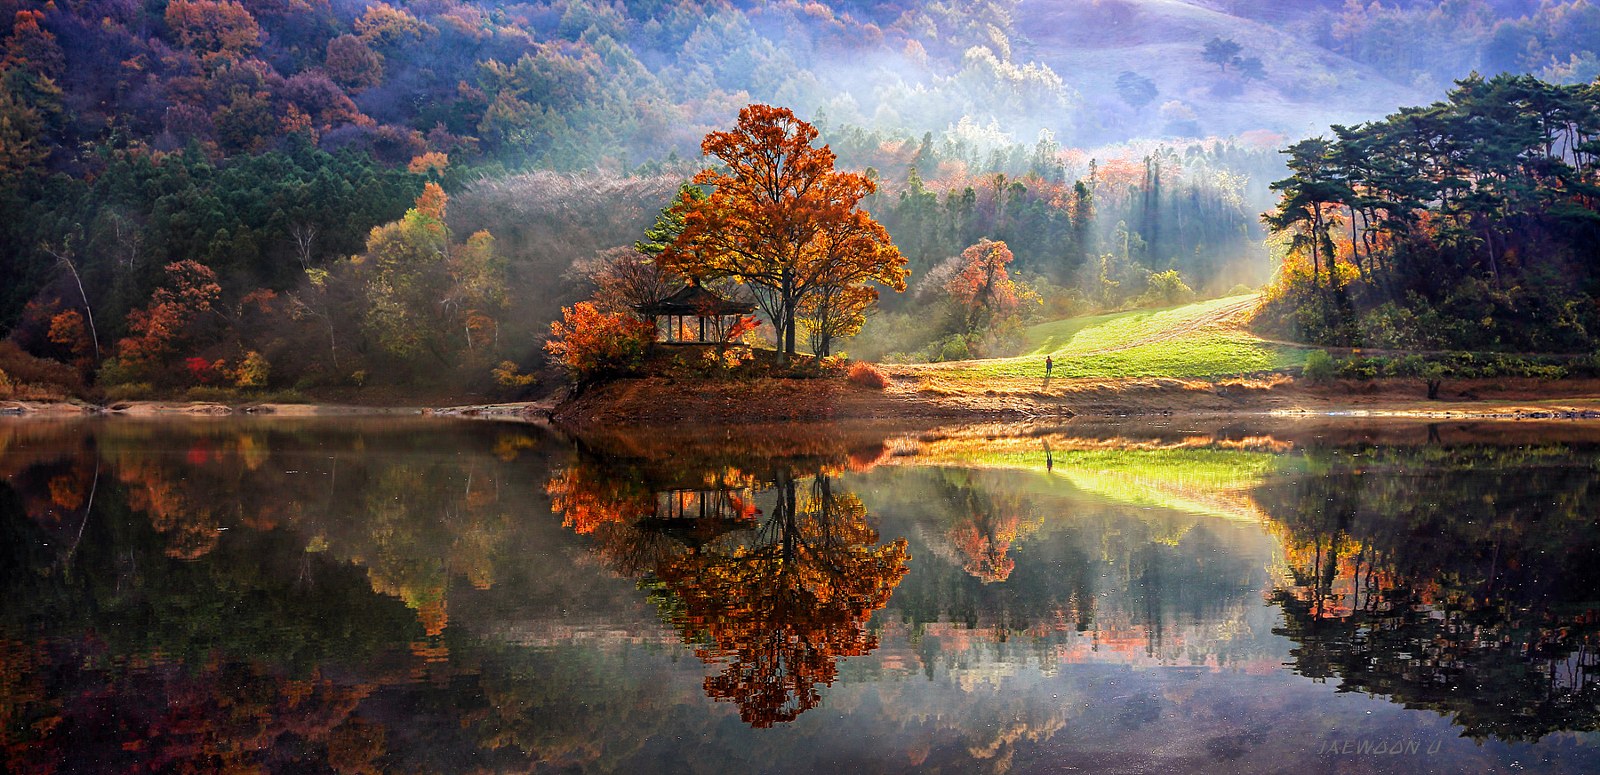 500px Blog » » 10 Perfect Reflected Landscapes by Jaewoon U